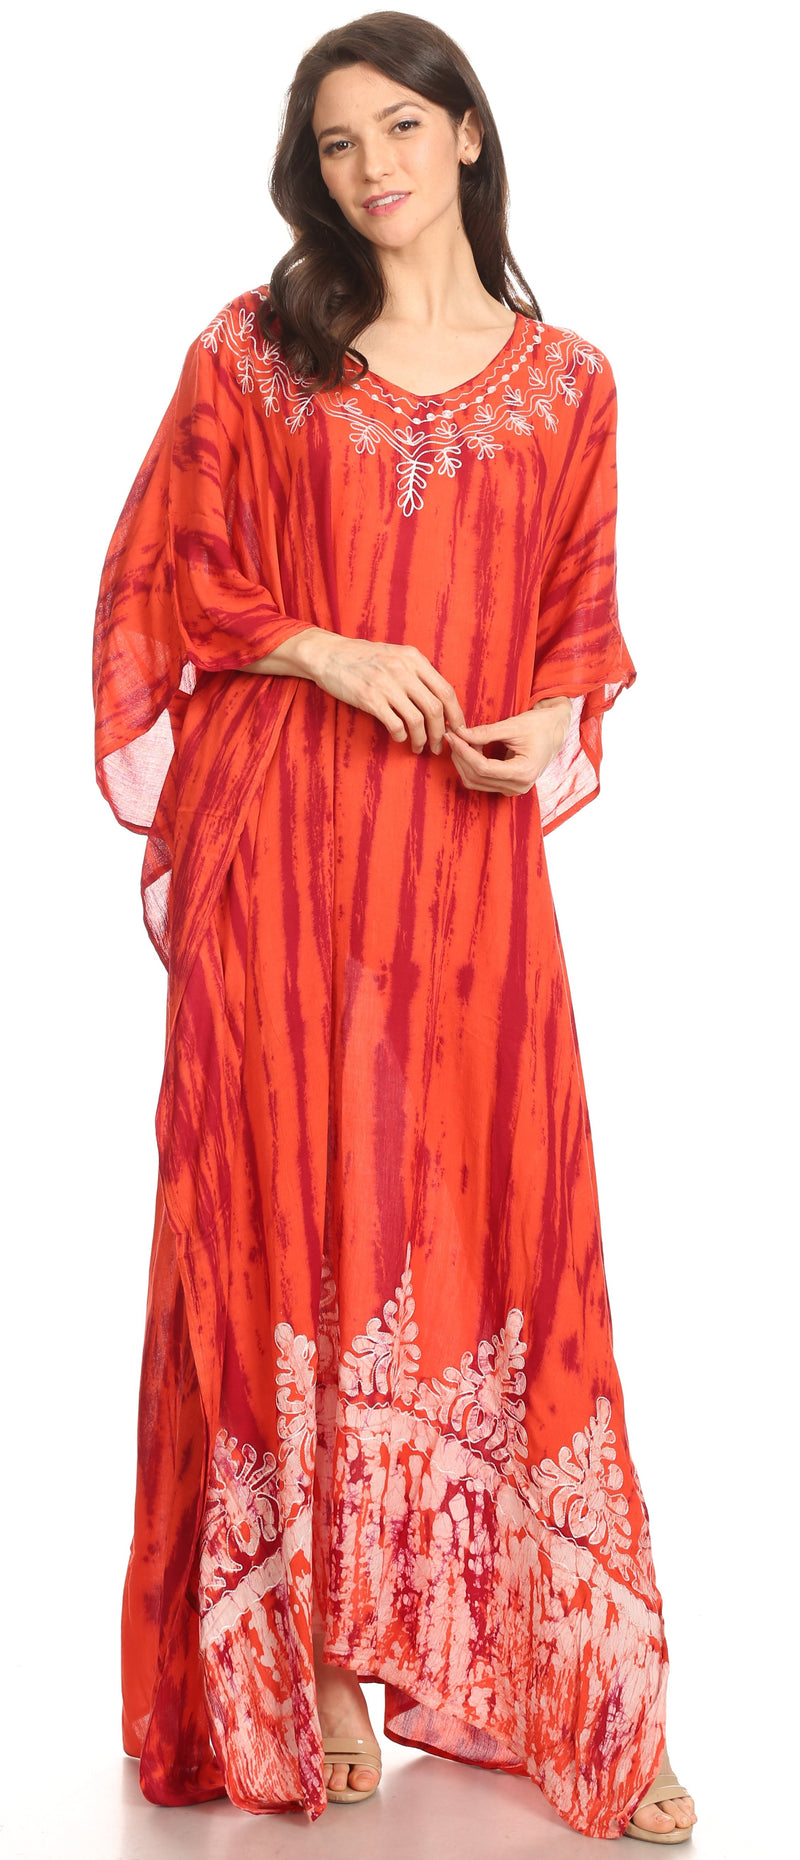 Sakkas Tacy Women's Casual Boho Summer Maxi Dress Caftan Kaftan Cover-up LougeWear